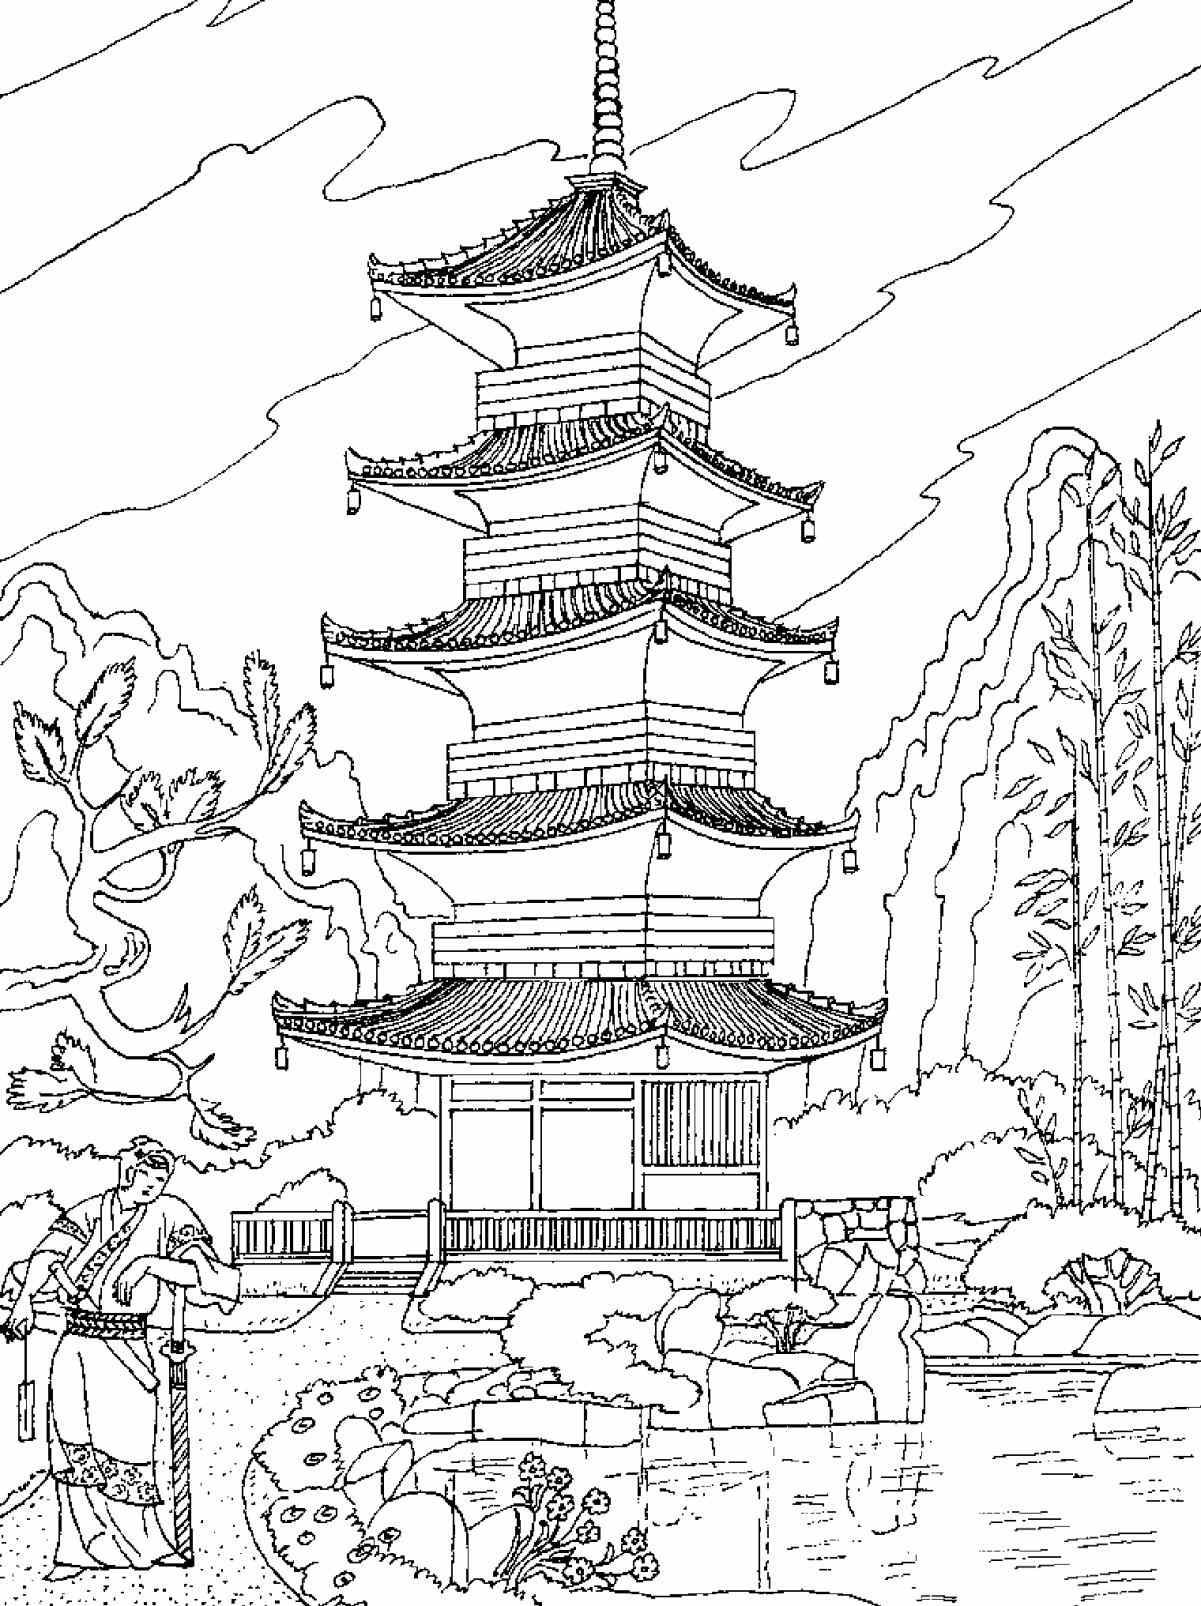 Detailed Landscape Coloring Pages For Adults 21